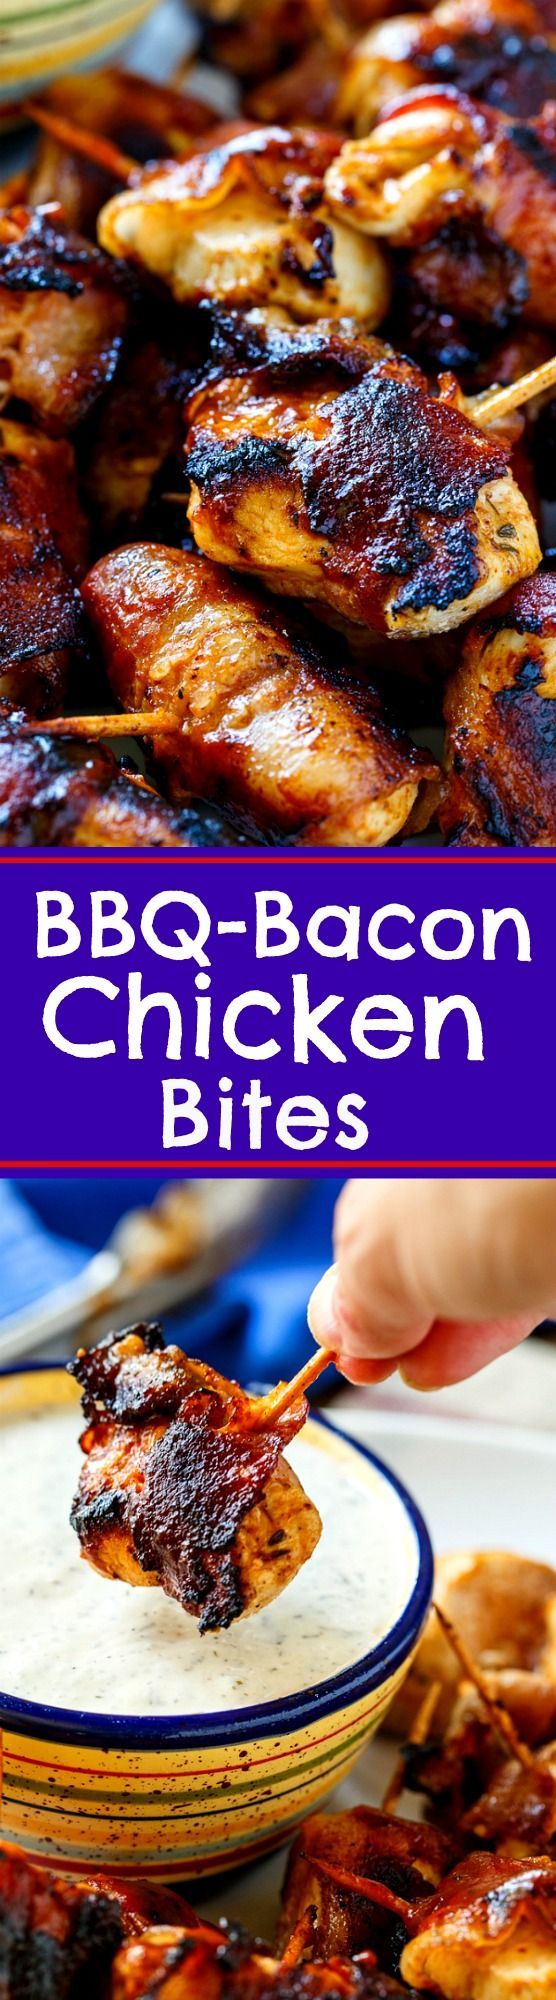 BBQ Bacon Chicken Bites- tender chunks of marinated white meat coated in BBQ sauce and wrapped in bacon. Grilled until crispy.